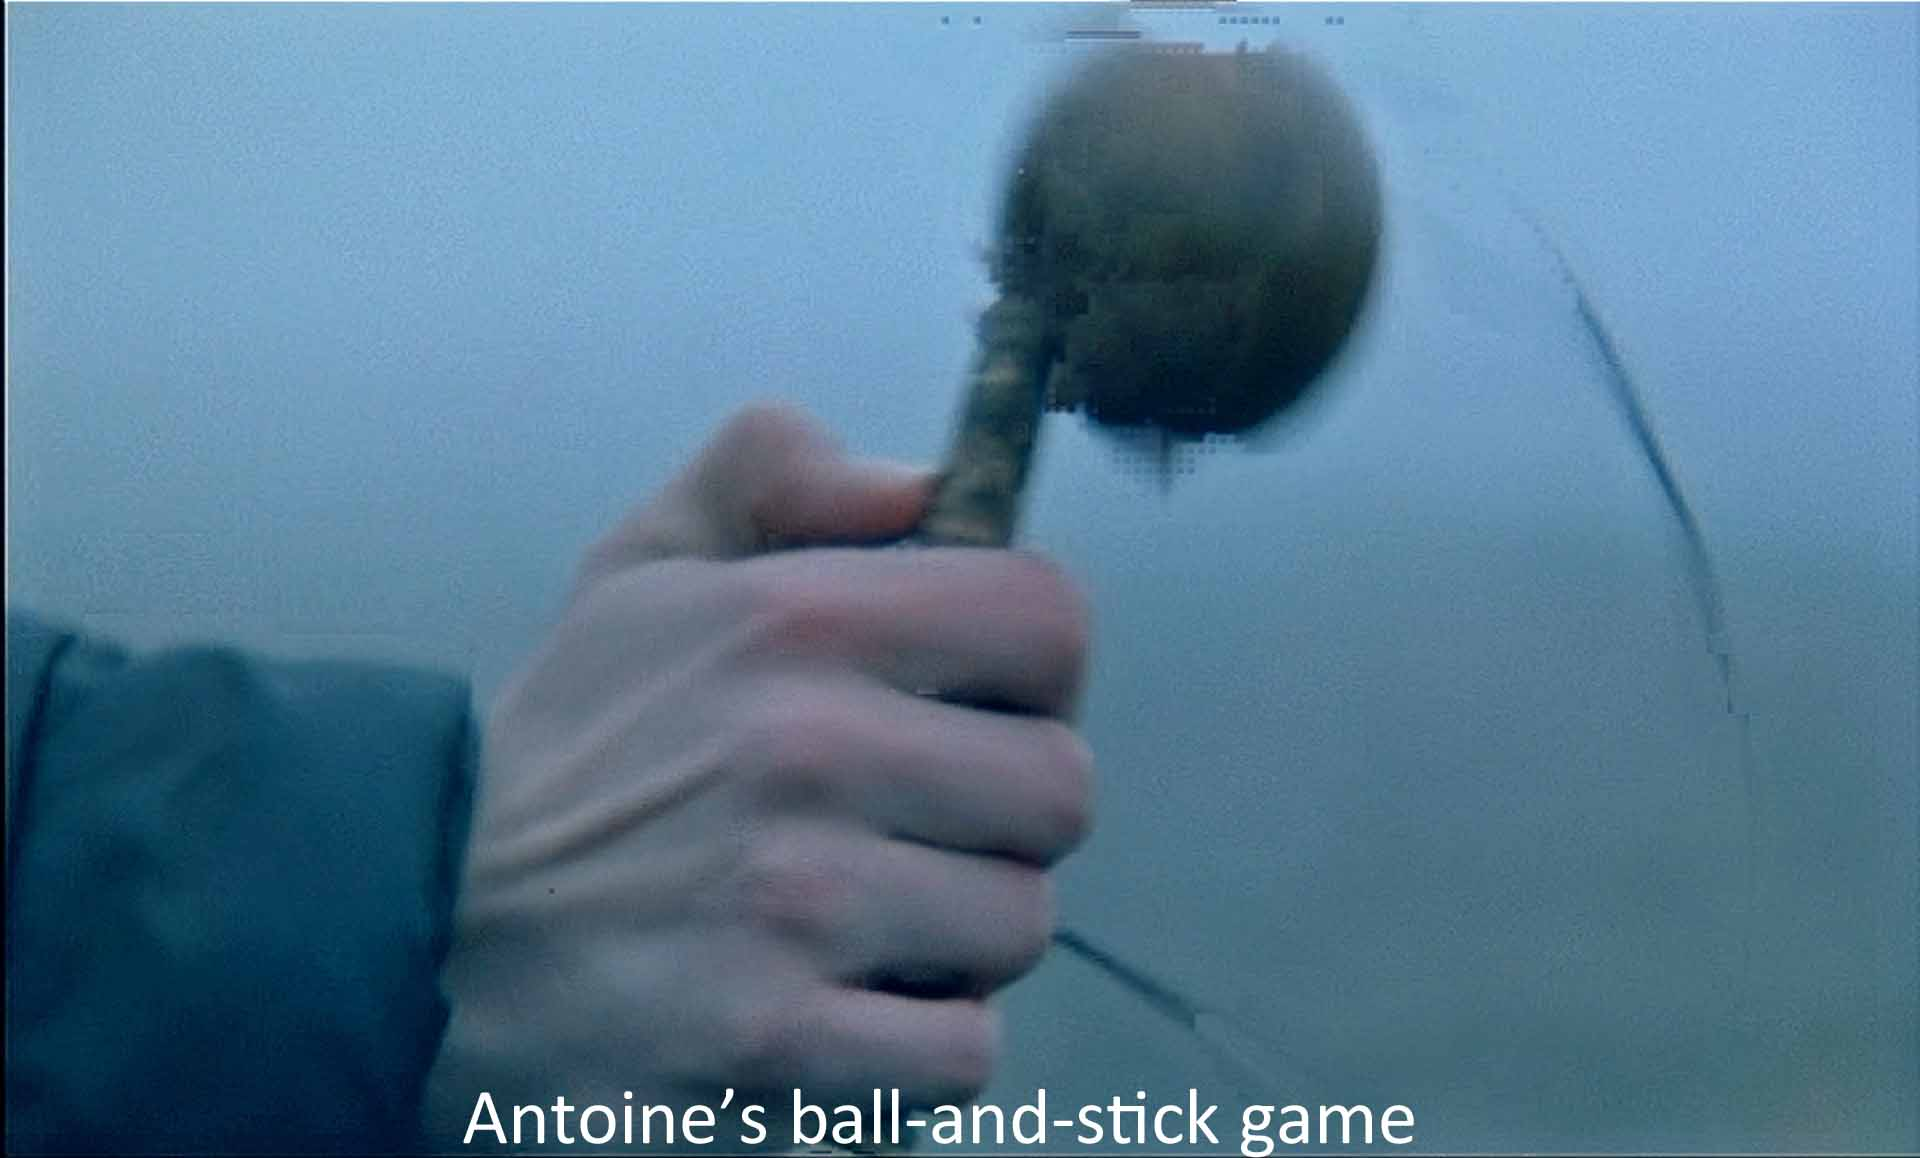 Antoine's ball-and-stick game